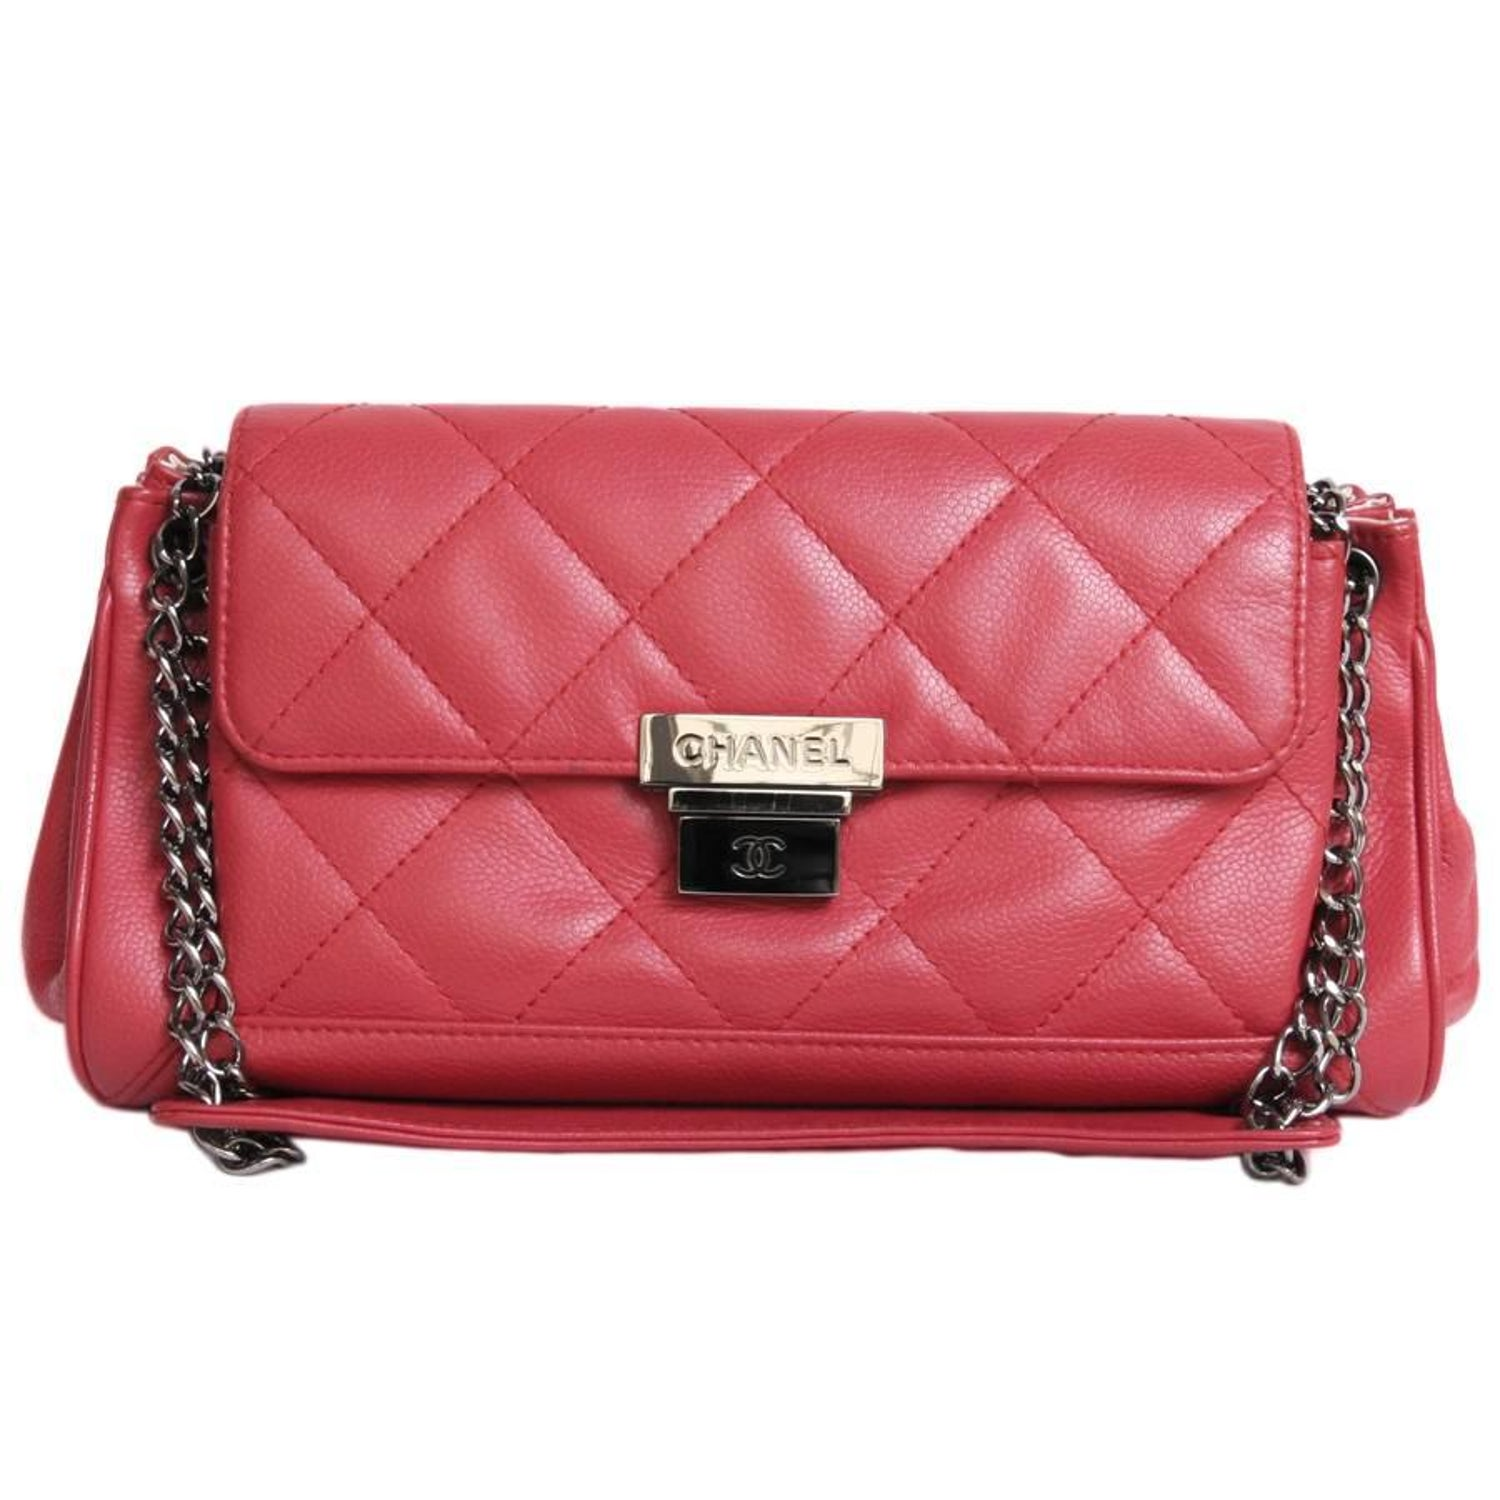 b583b8ad5c63 CHANEL  Accordion  Shoulder Bag in Red Caviar Leather at 1stdibs